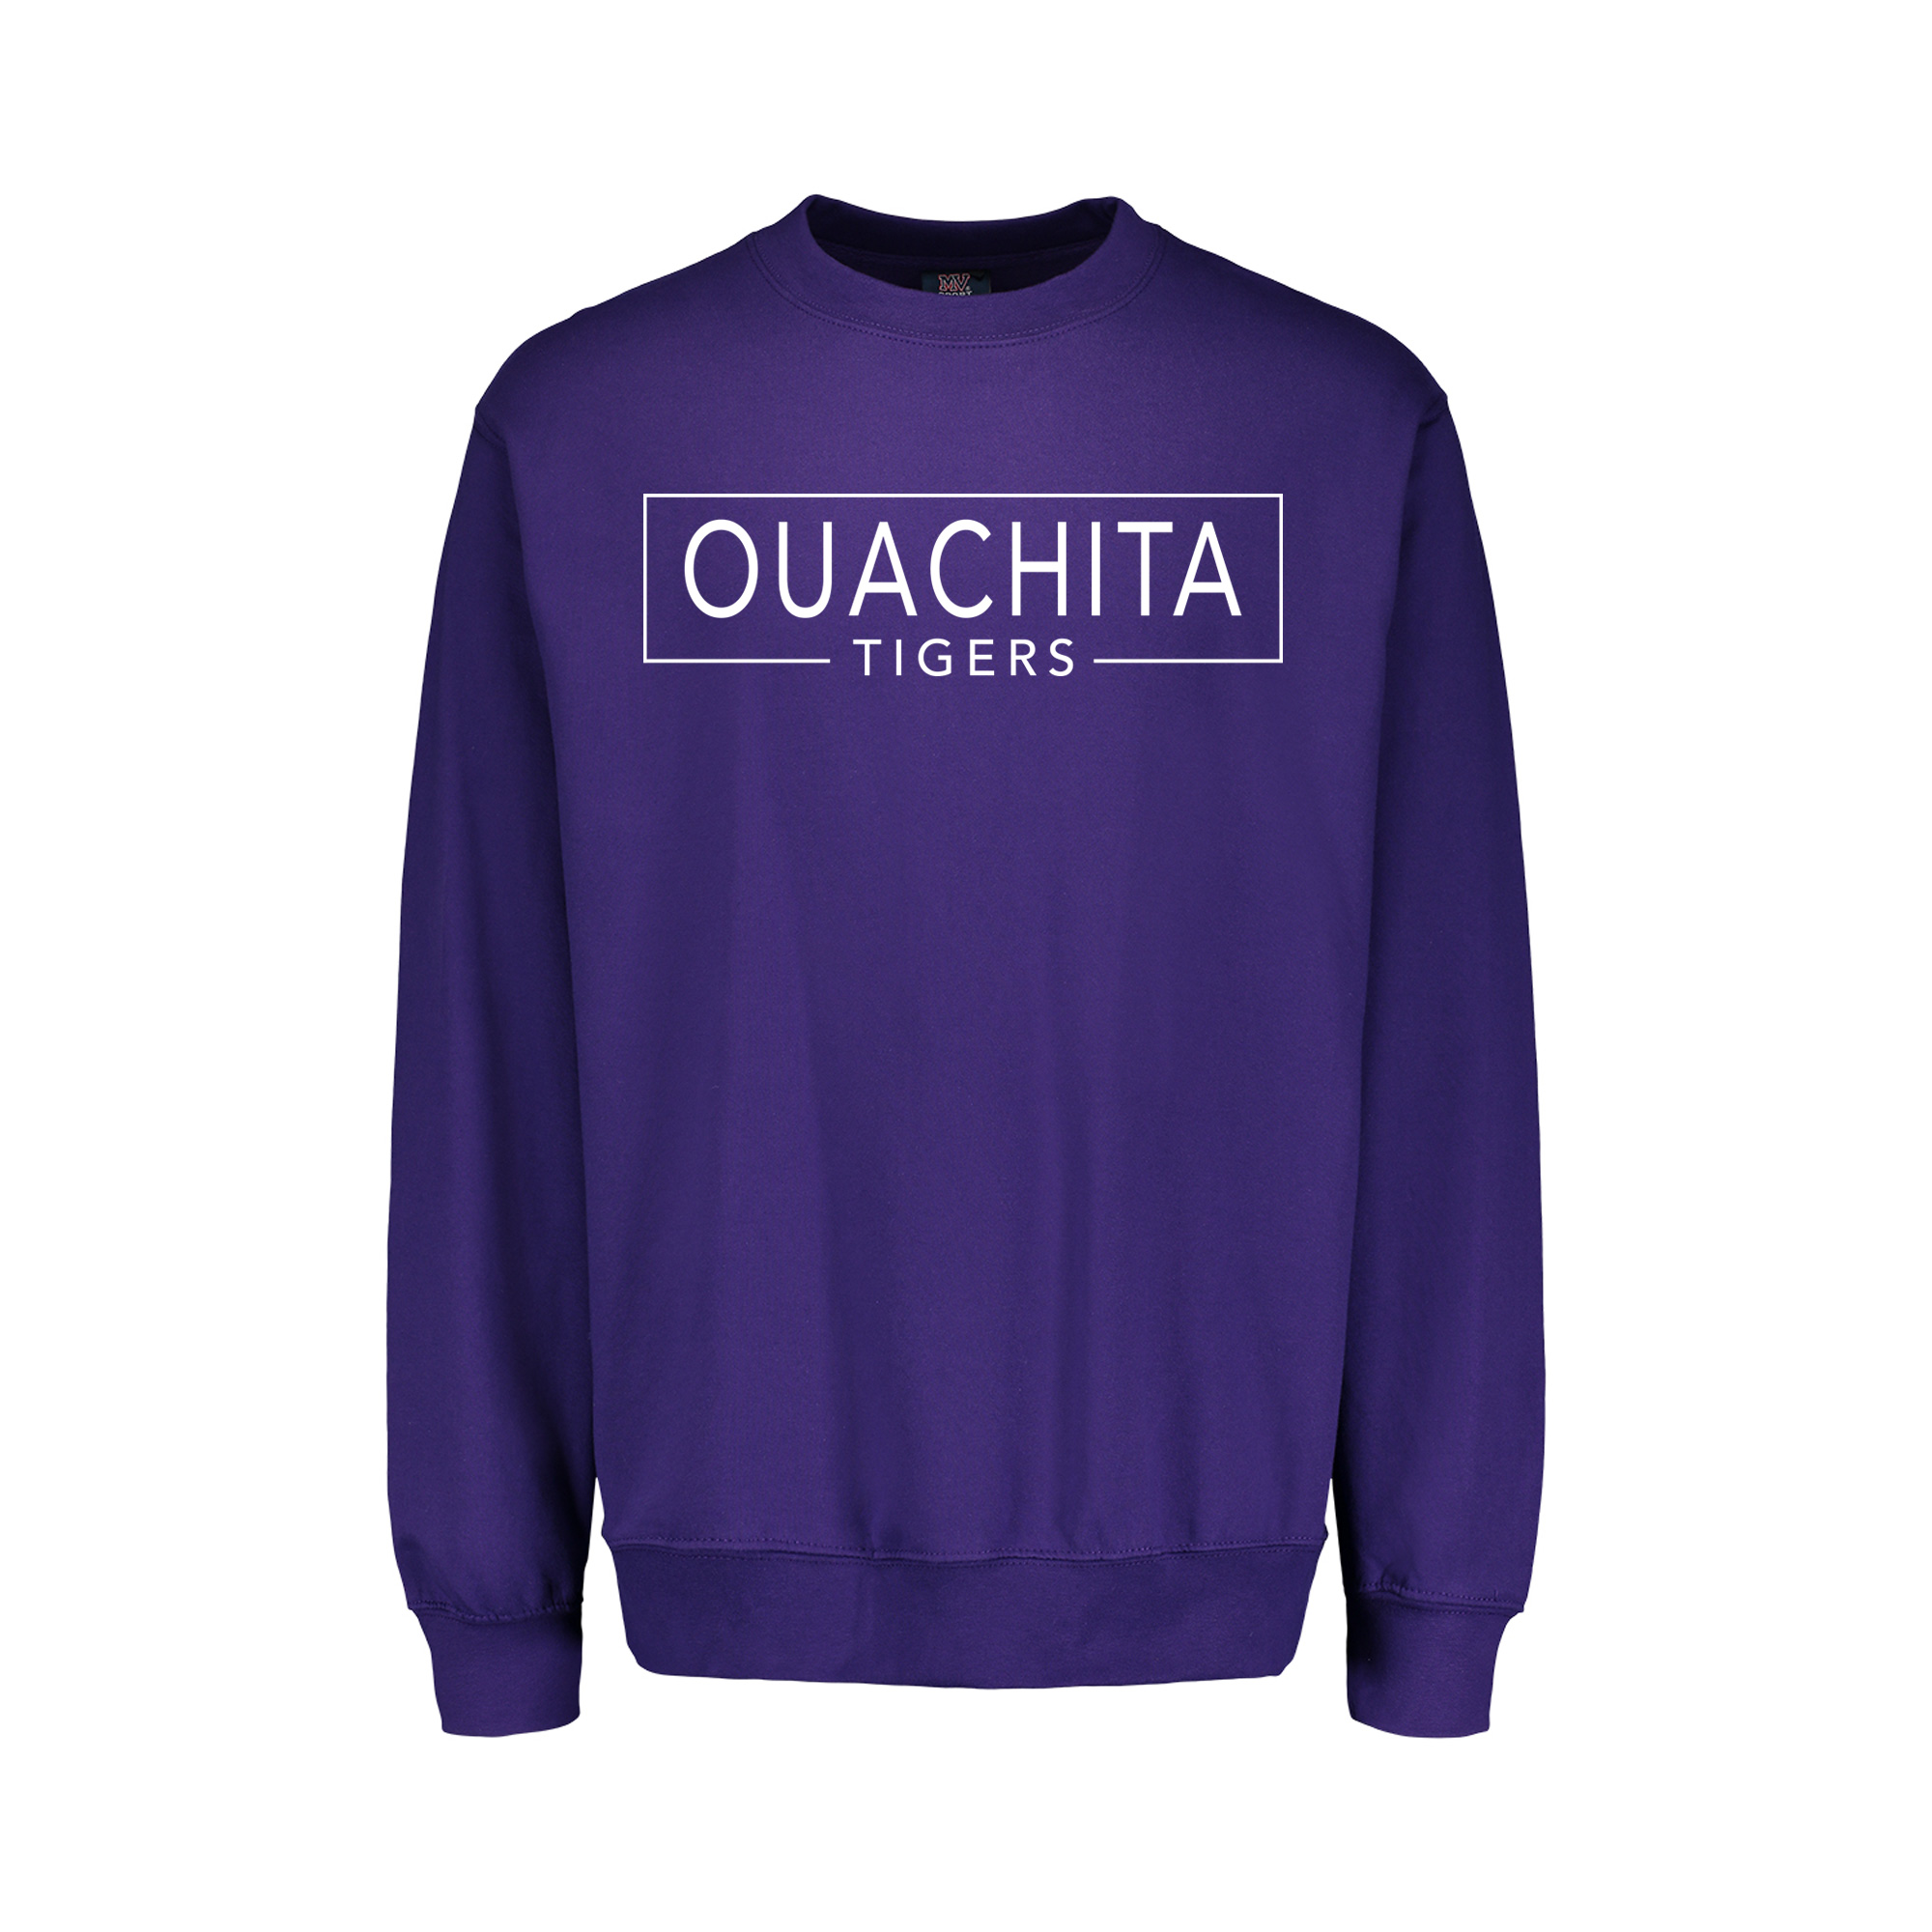 OUACHITA FLEECE CREW